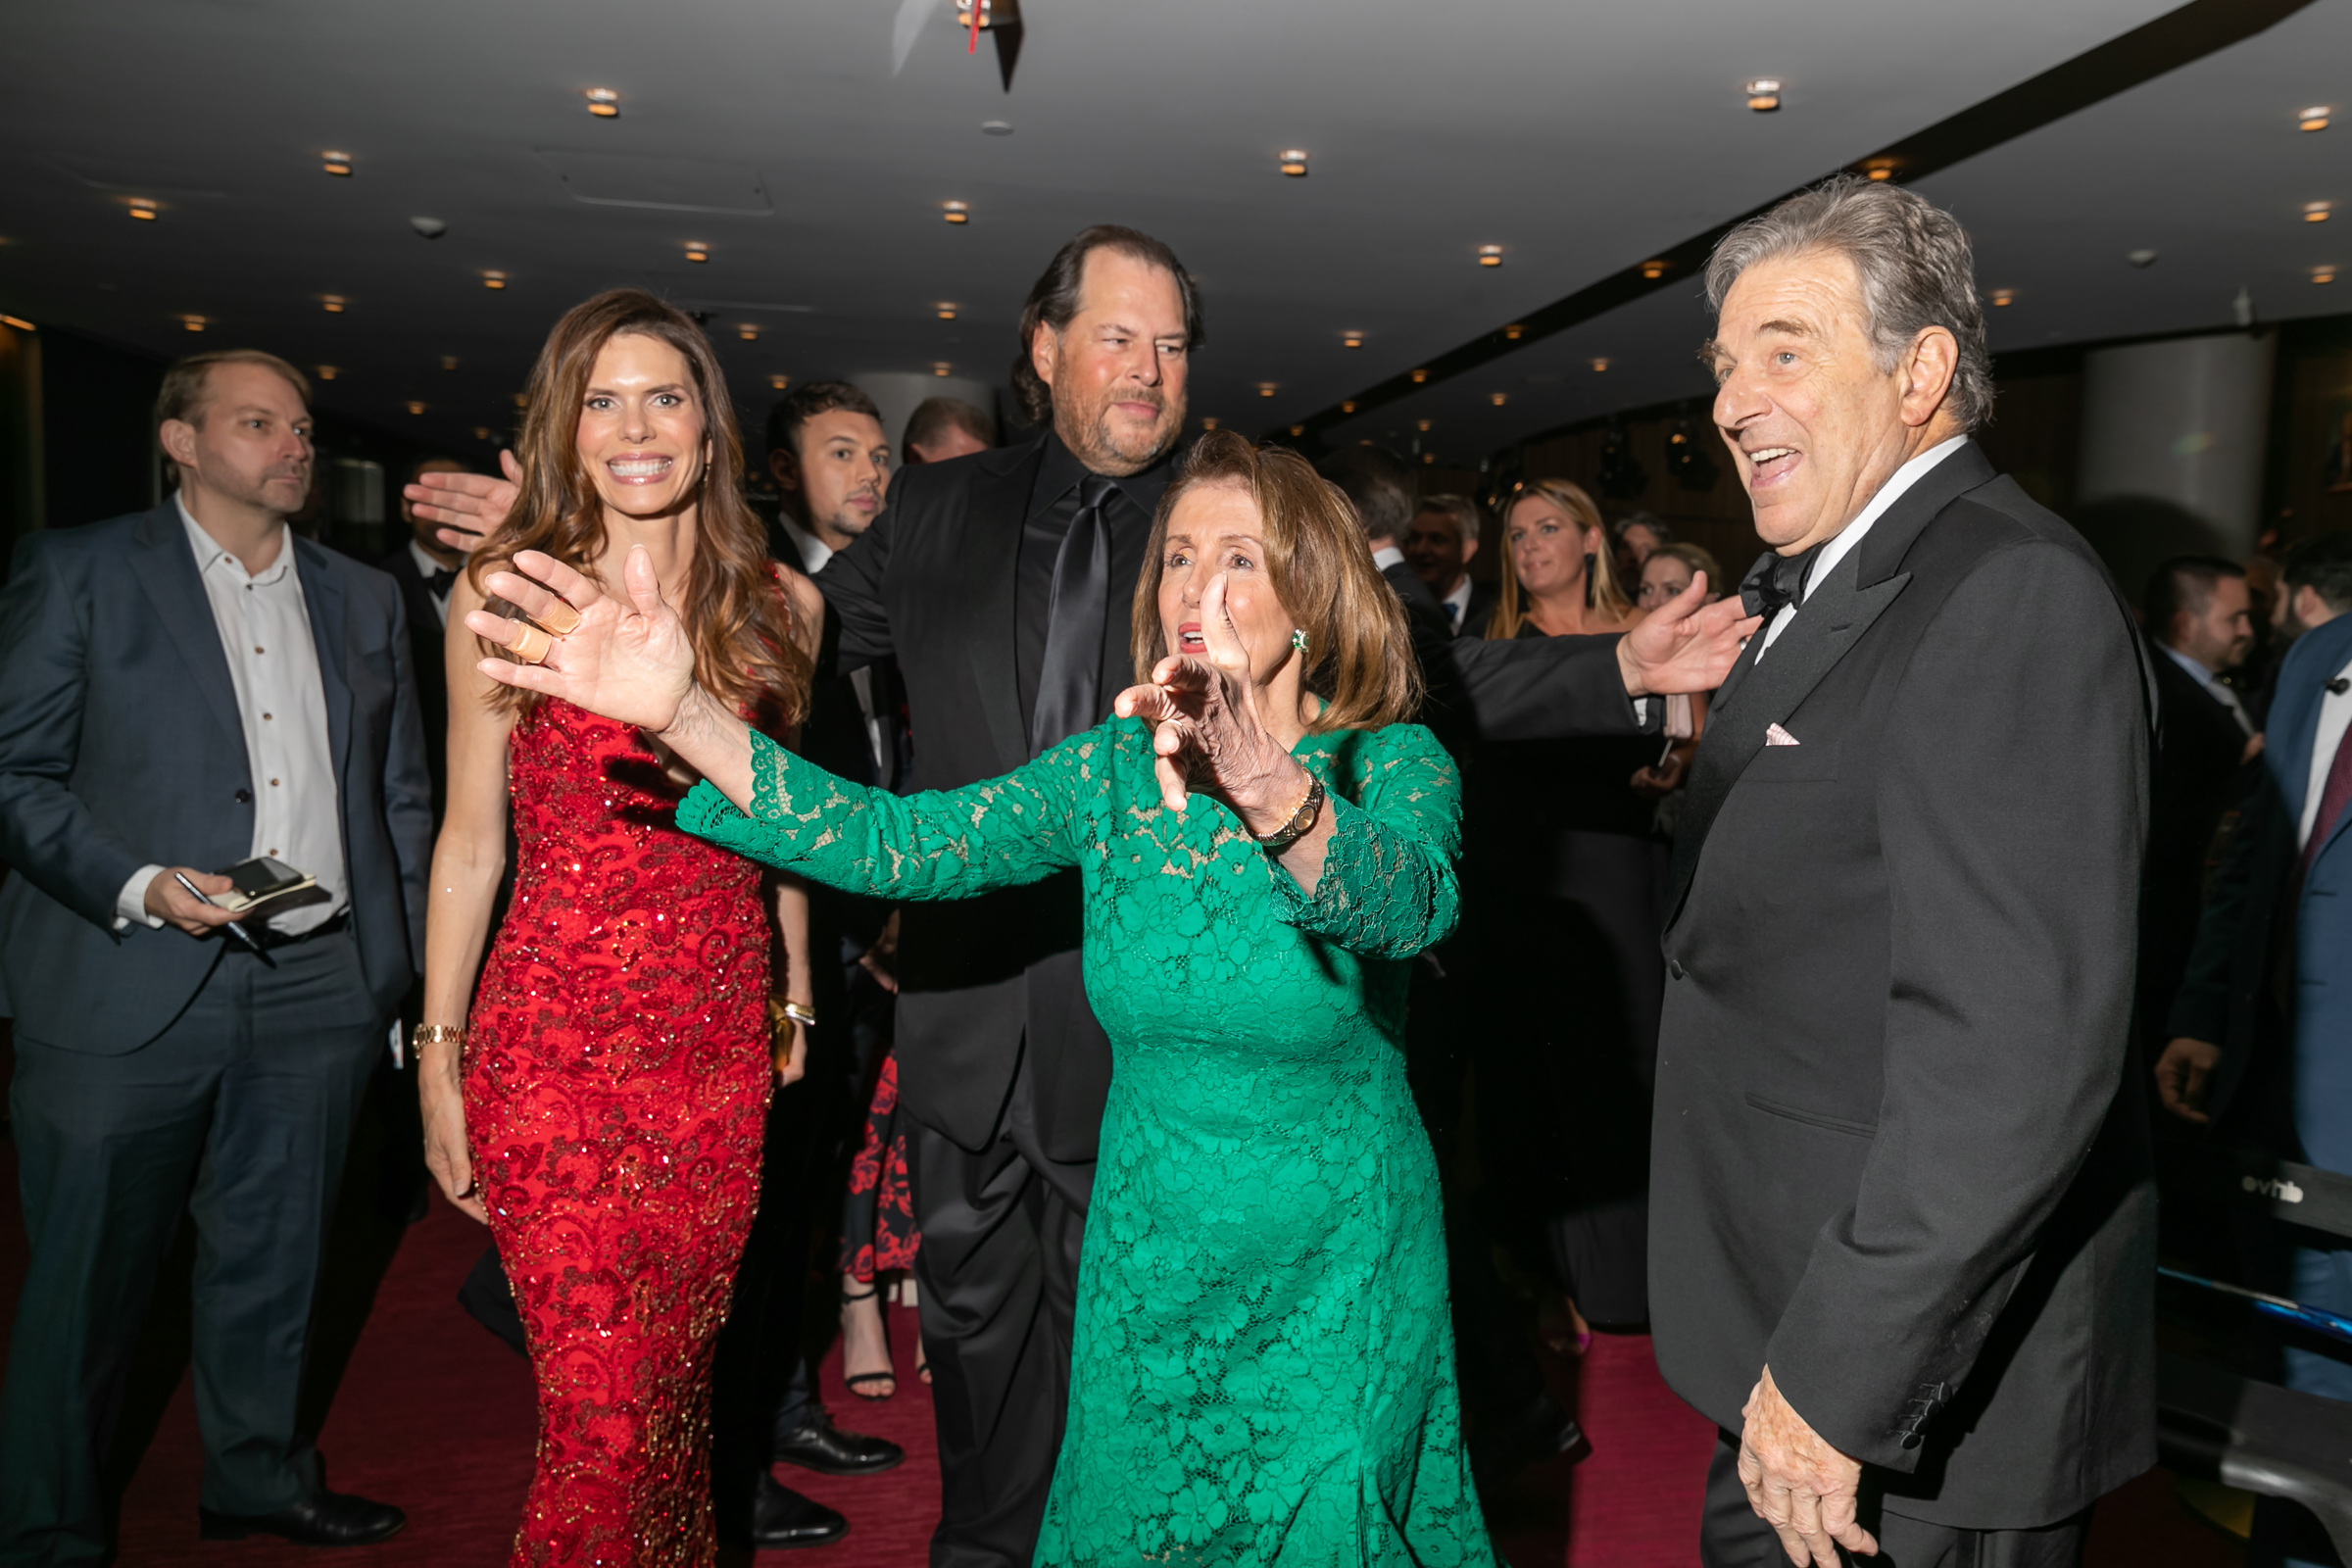 Lynne and Marc Benioff and Nancy Pelosi at the Time 100 Gala at Jazz at Lincoln Center in New York City on April 23, 2019.